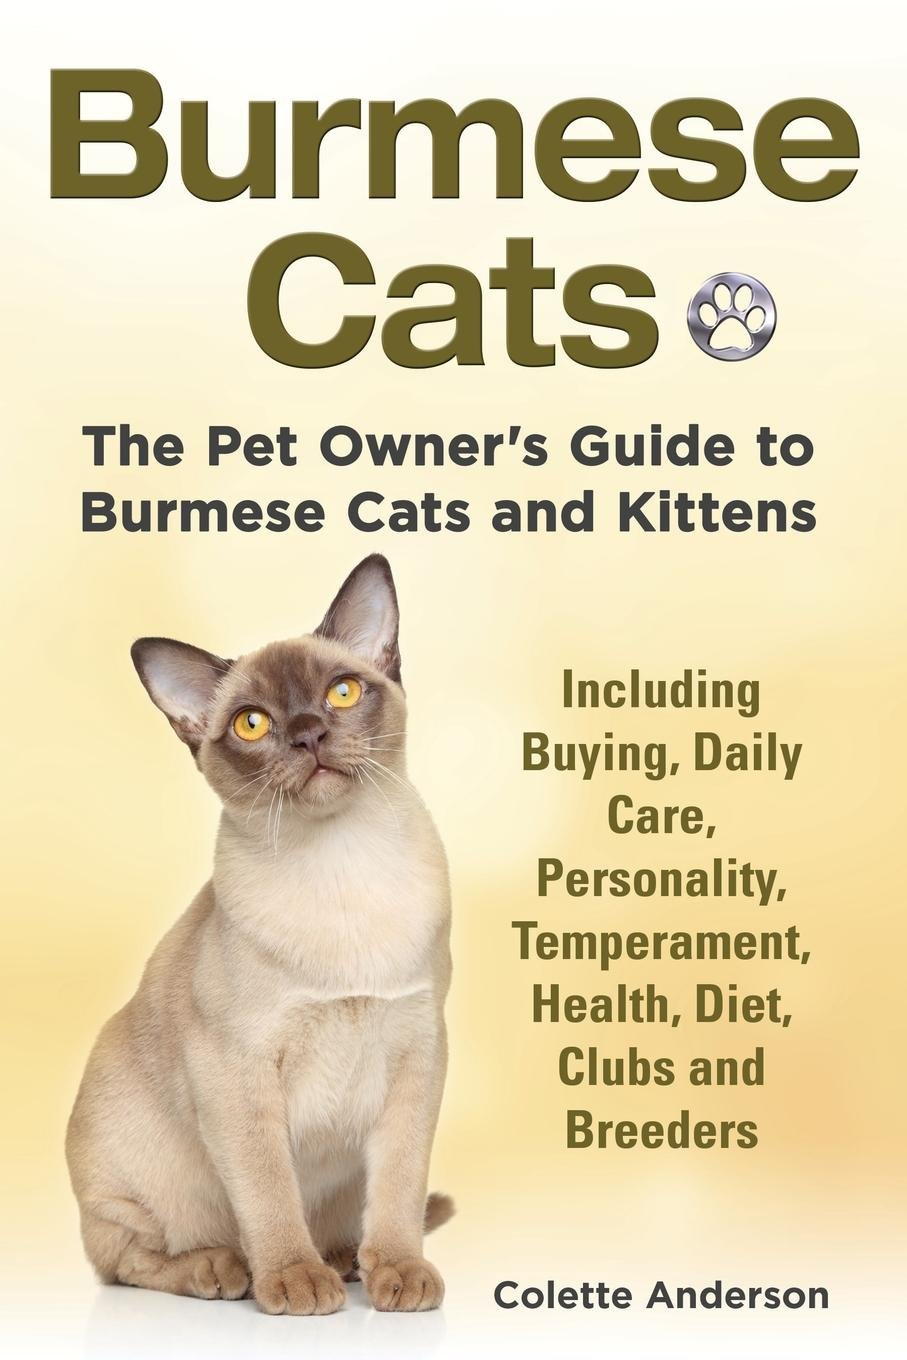 Burmese Cats, The Pet Owner's Guide to Burmese Cats and Kittens Including Buying, Daily Care, Personality, Temperament, Health, Diet, Clubs and Breeders